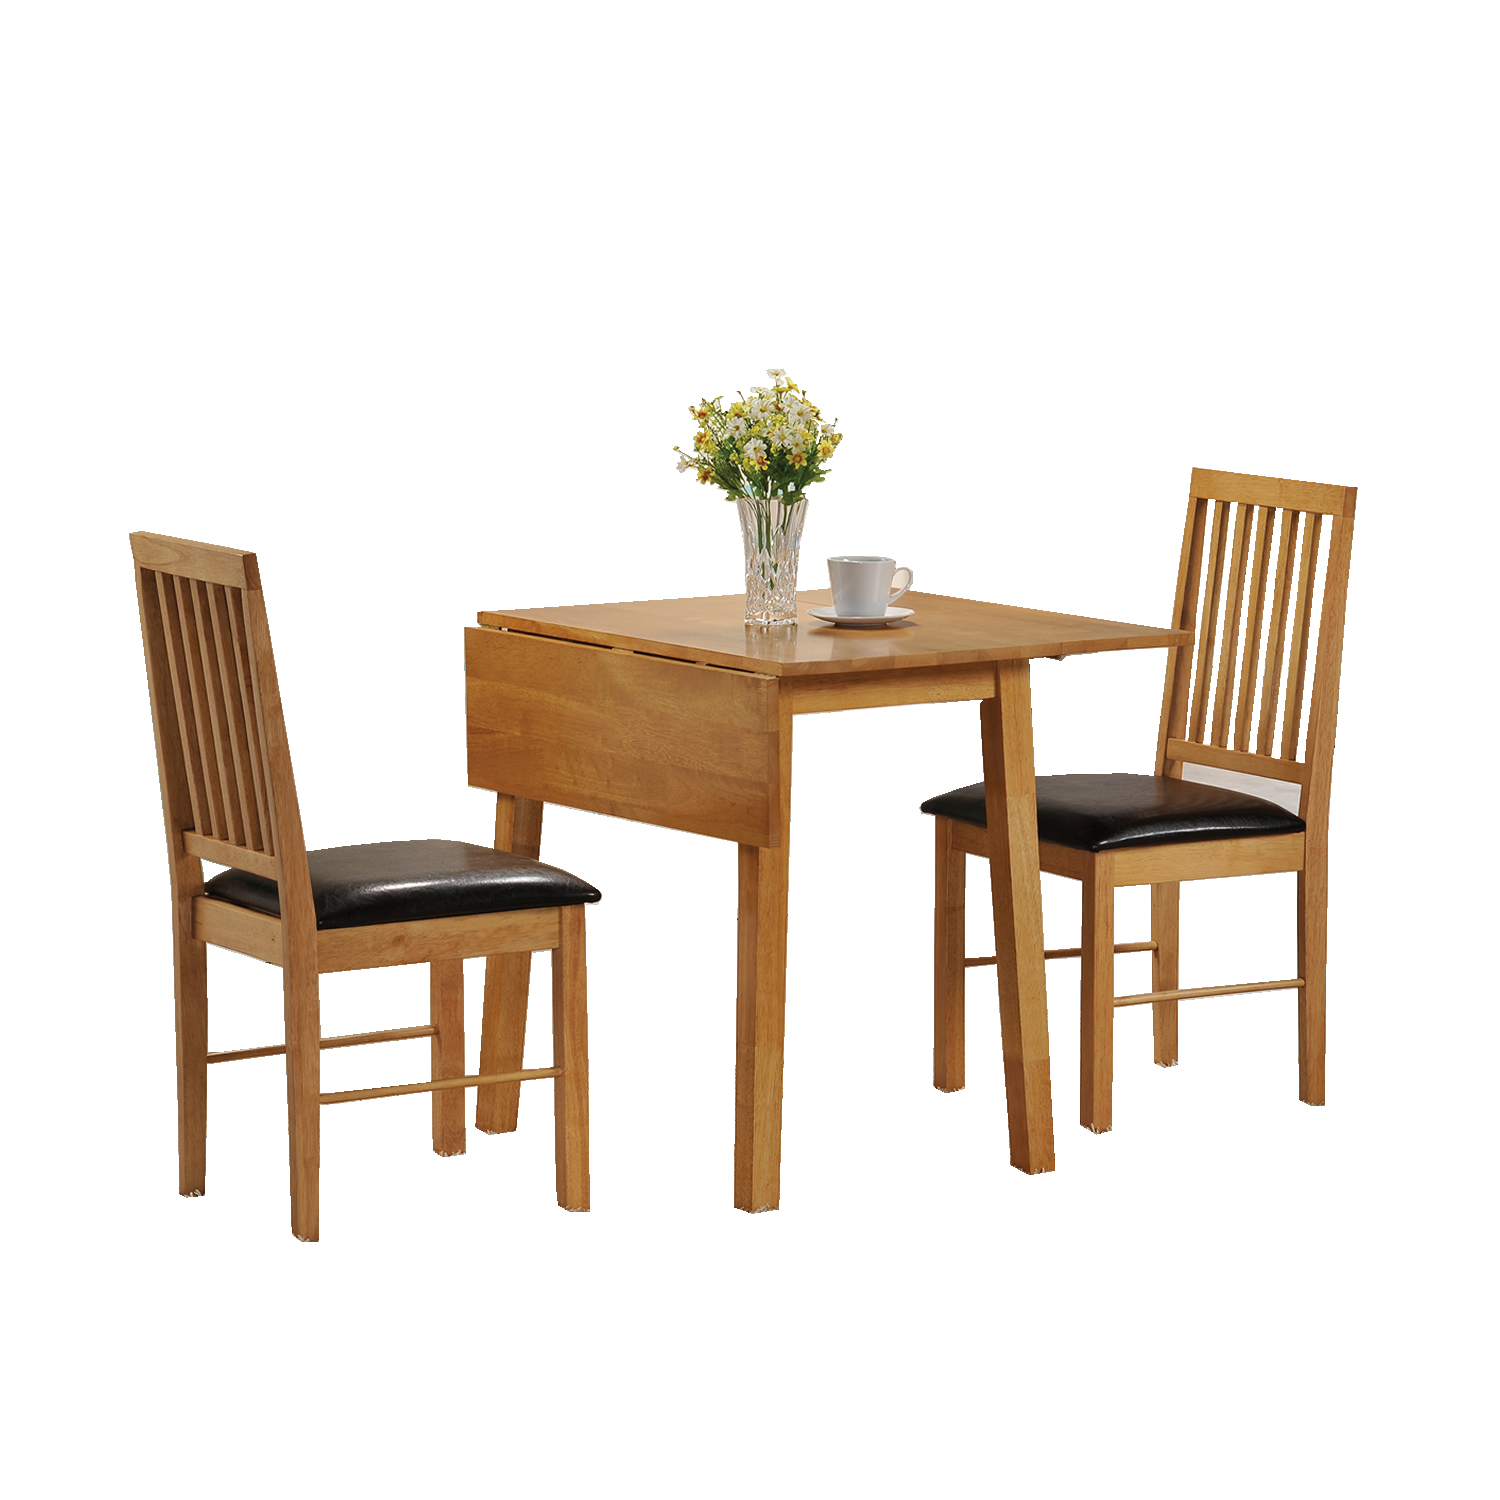 Drop leaf tables for small spaces homesfeed for Dining room table with bench